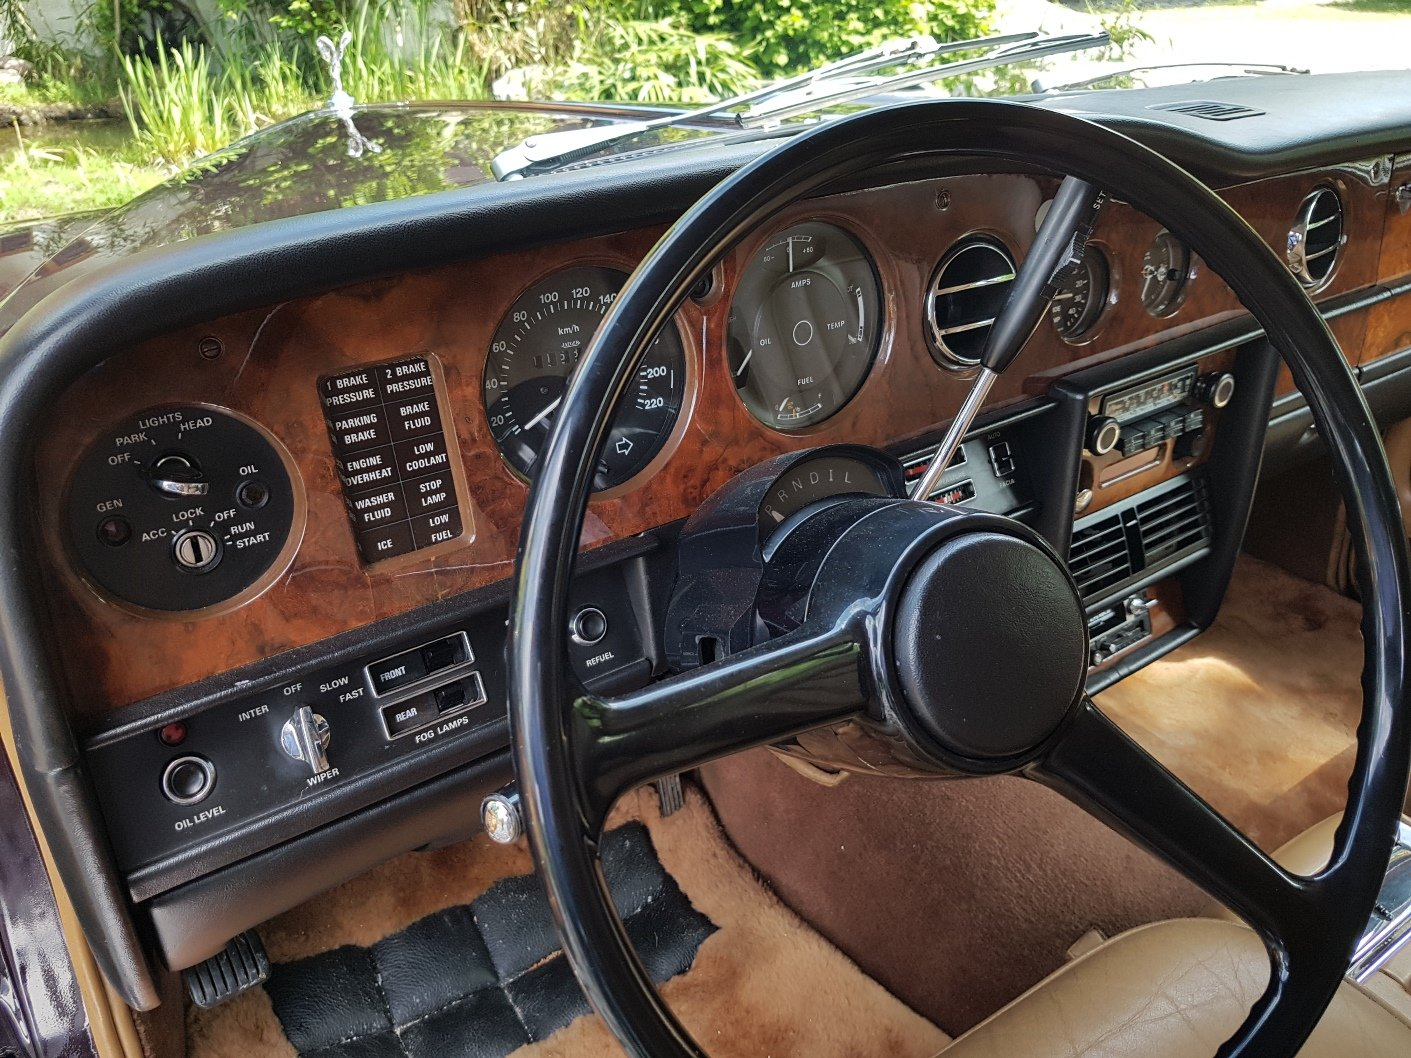 1980 Rolls Royce Silver Wraith II, electric division For Sale (picture 6 of 6)